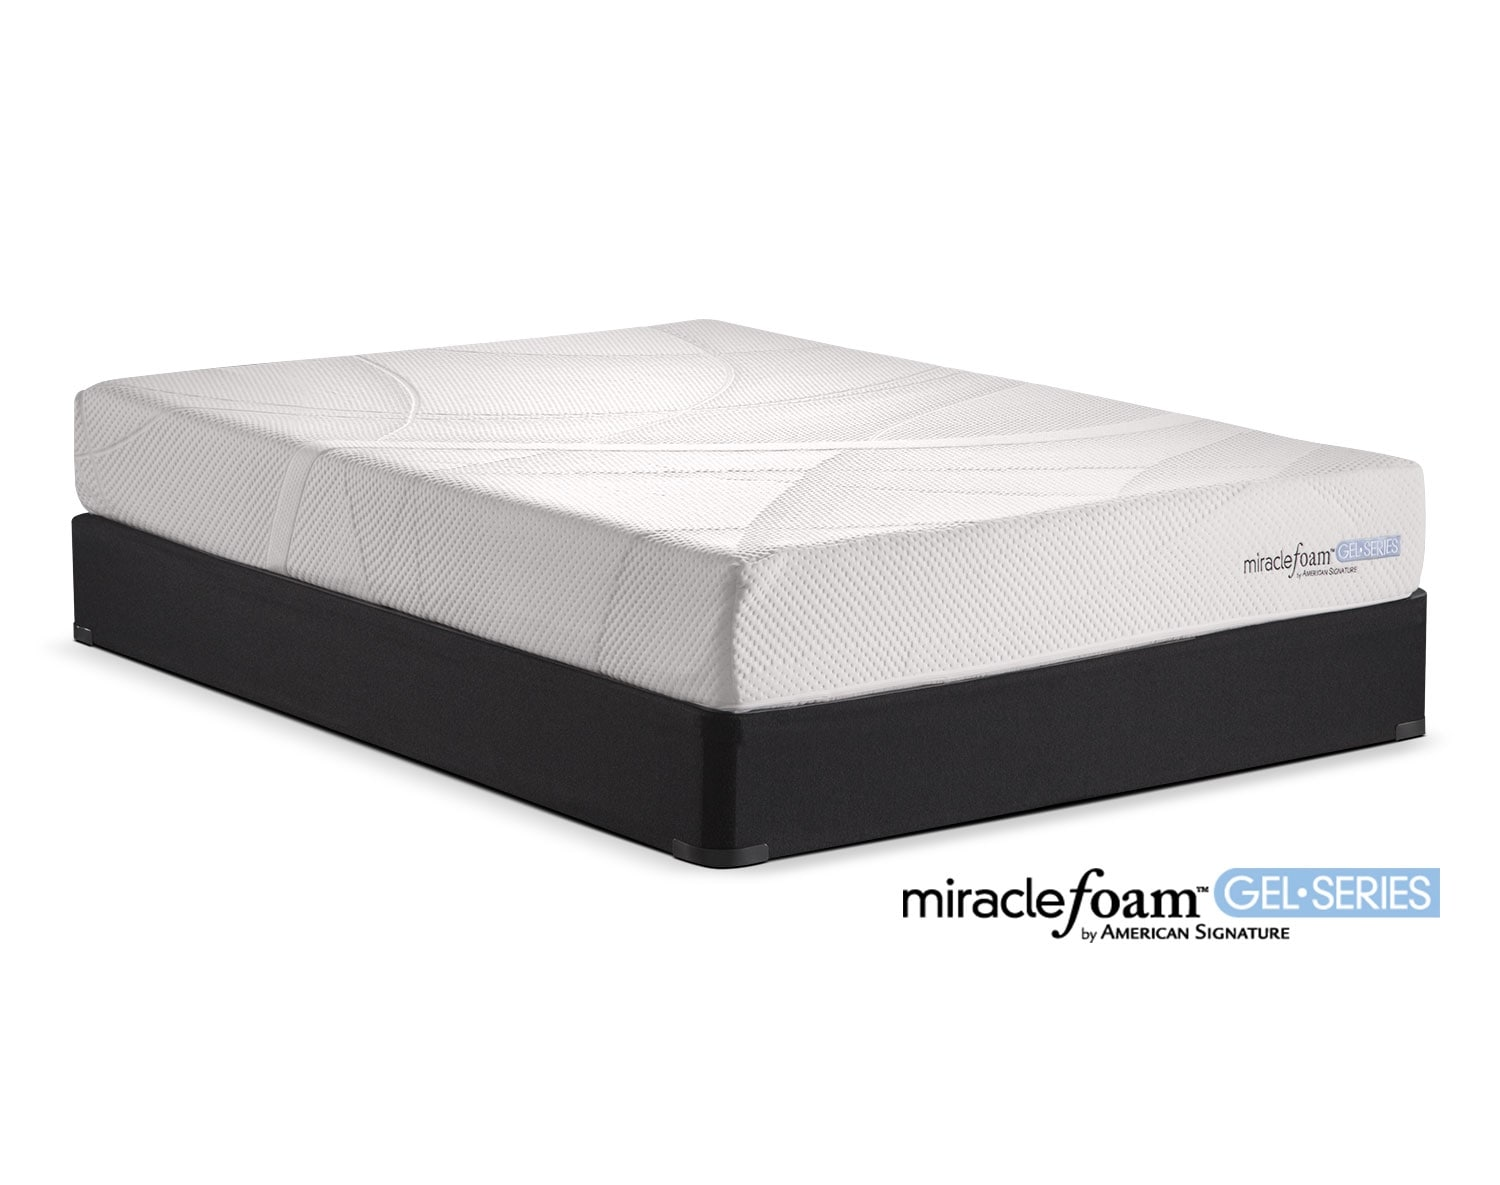 The Rejuvenate II Firm Mattress Collection